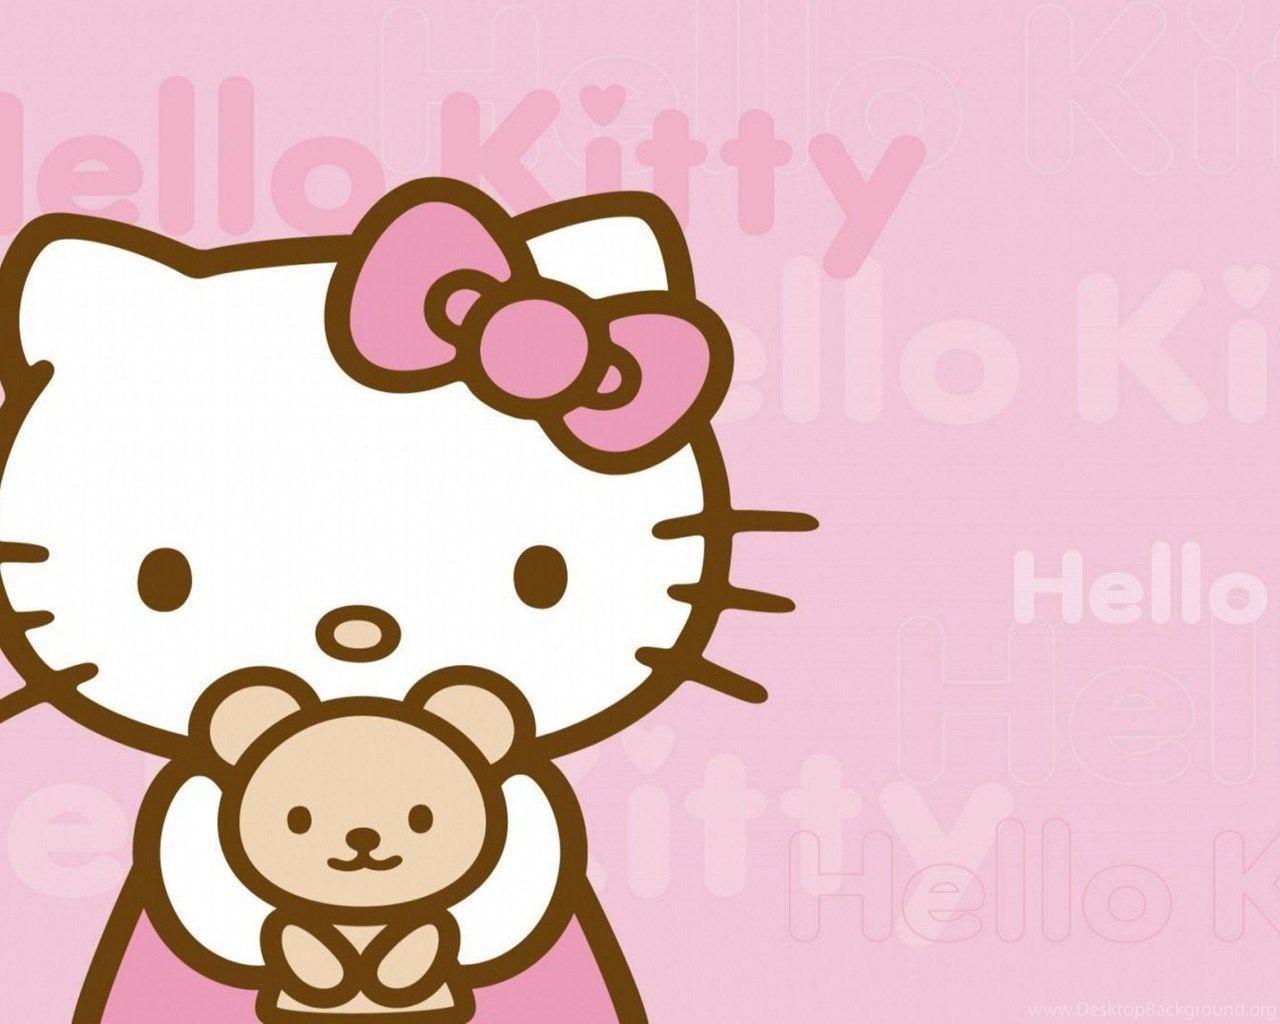 Amazing Wallpaper Hello Kitty Tablet - 37320_hello-kitty-wallpapers-for-android-tablet_2920x1825_h  Snapshot_475872.jpg